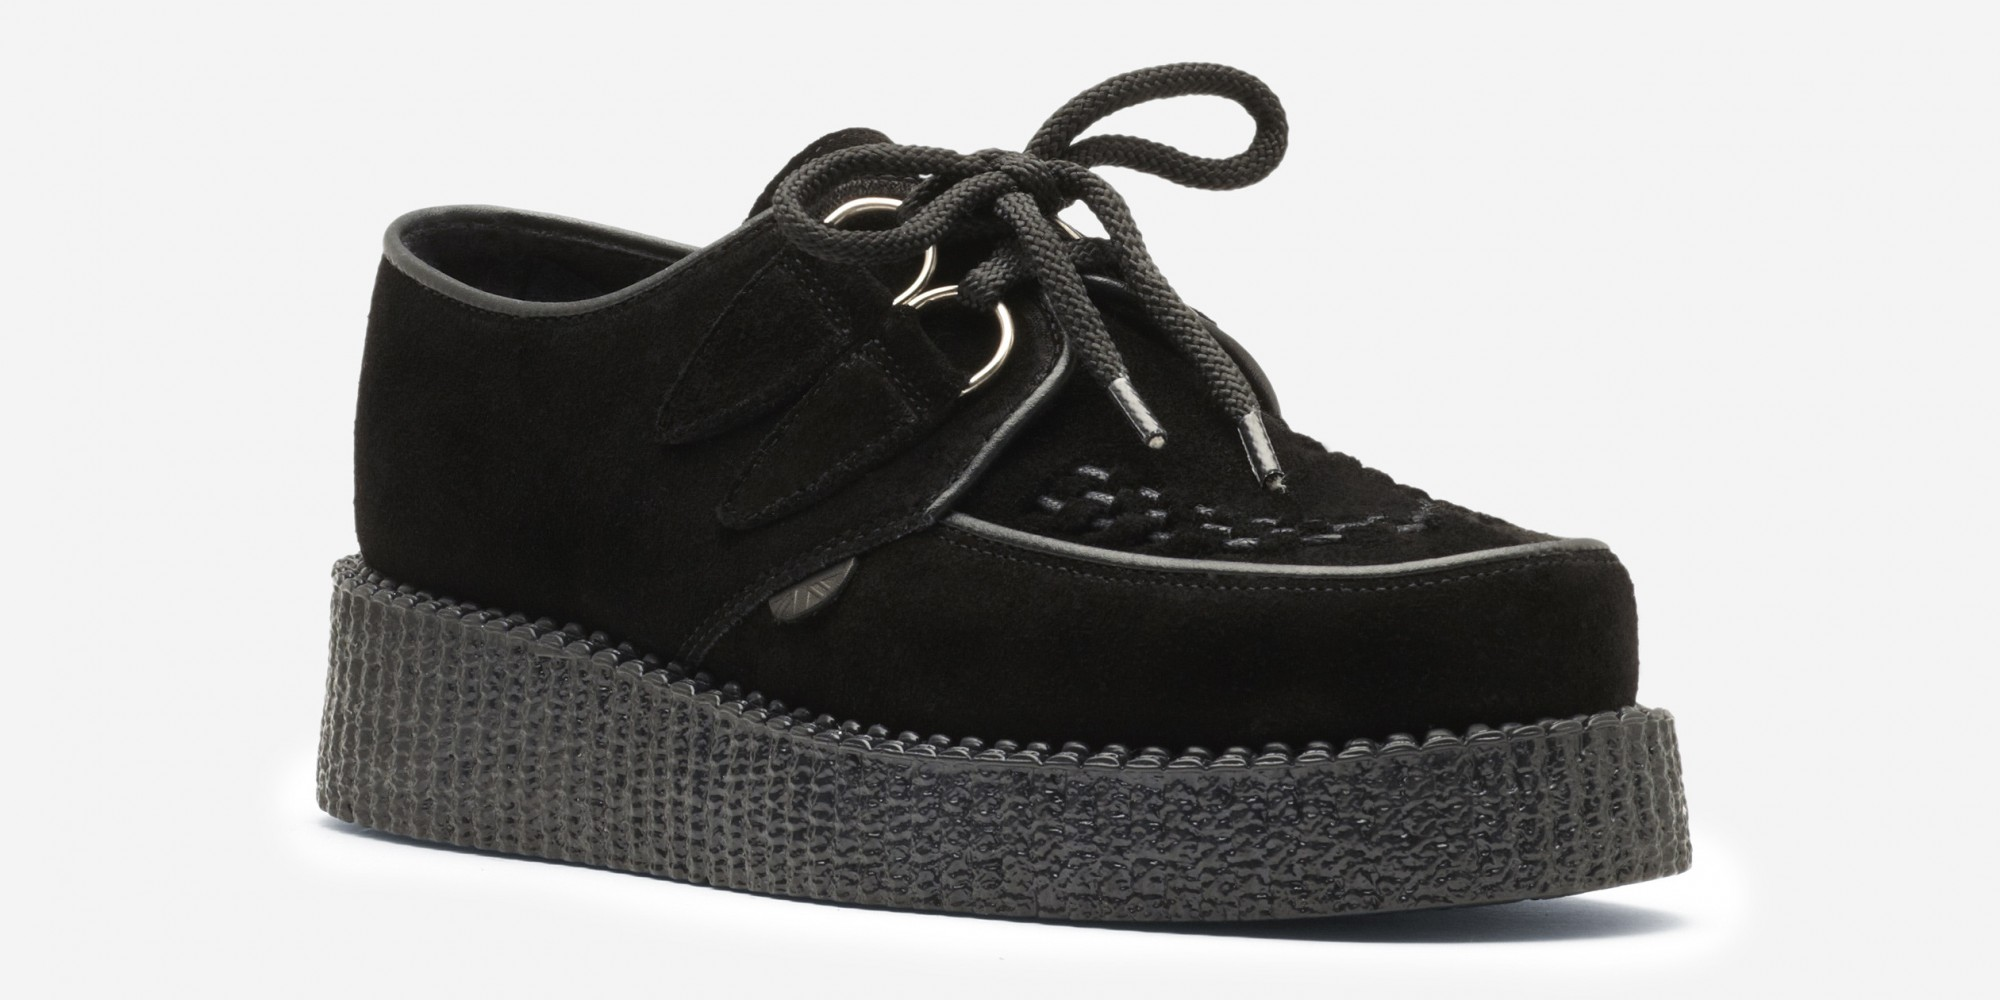 single-sole-wulfrun-creepers-black-suede-Underground_UM_C10SX_BLK_B-2000x1000